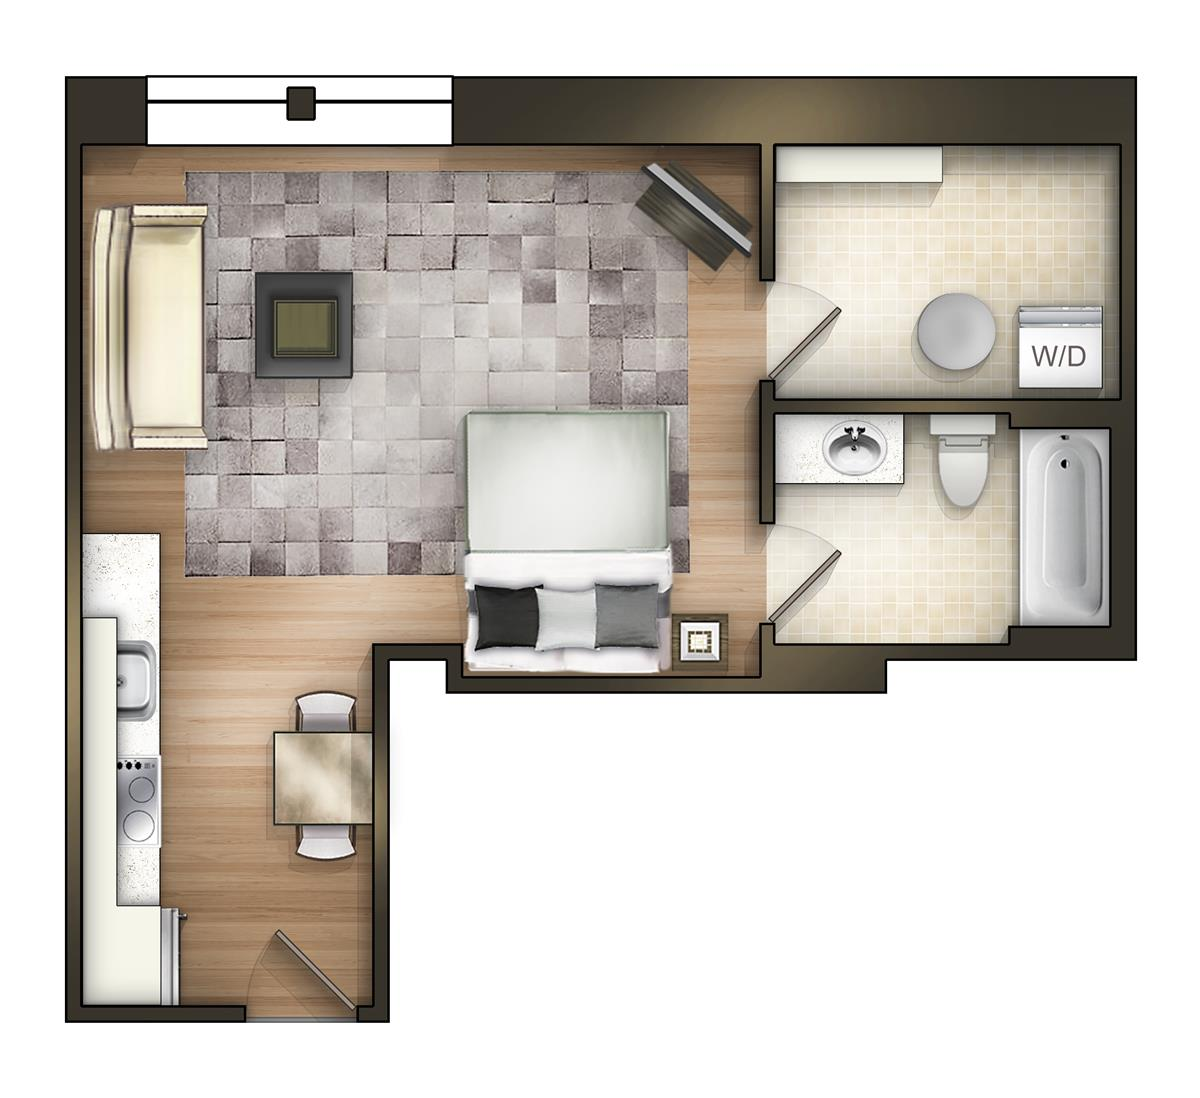 The tower luxury apartments apartment in tuscaloosa al - One bedroom apartments in tuscaloosa ...